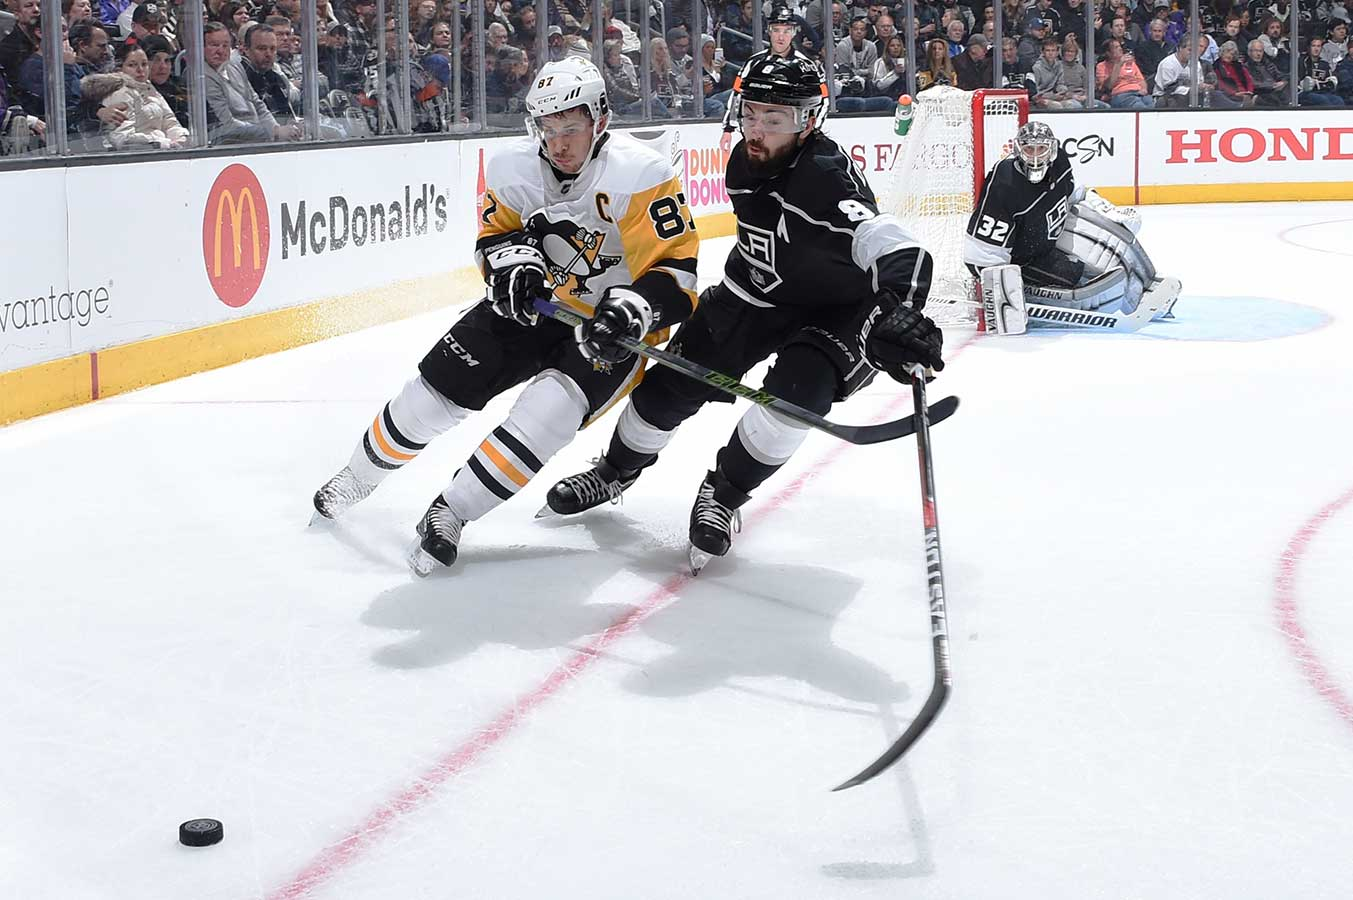 Drew-doughty-pittsburgh-penguins-postgame-quotes-boarding-major